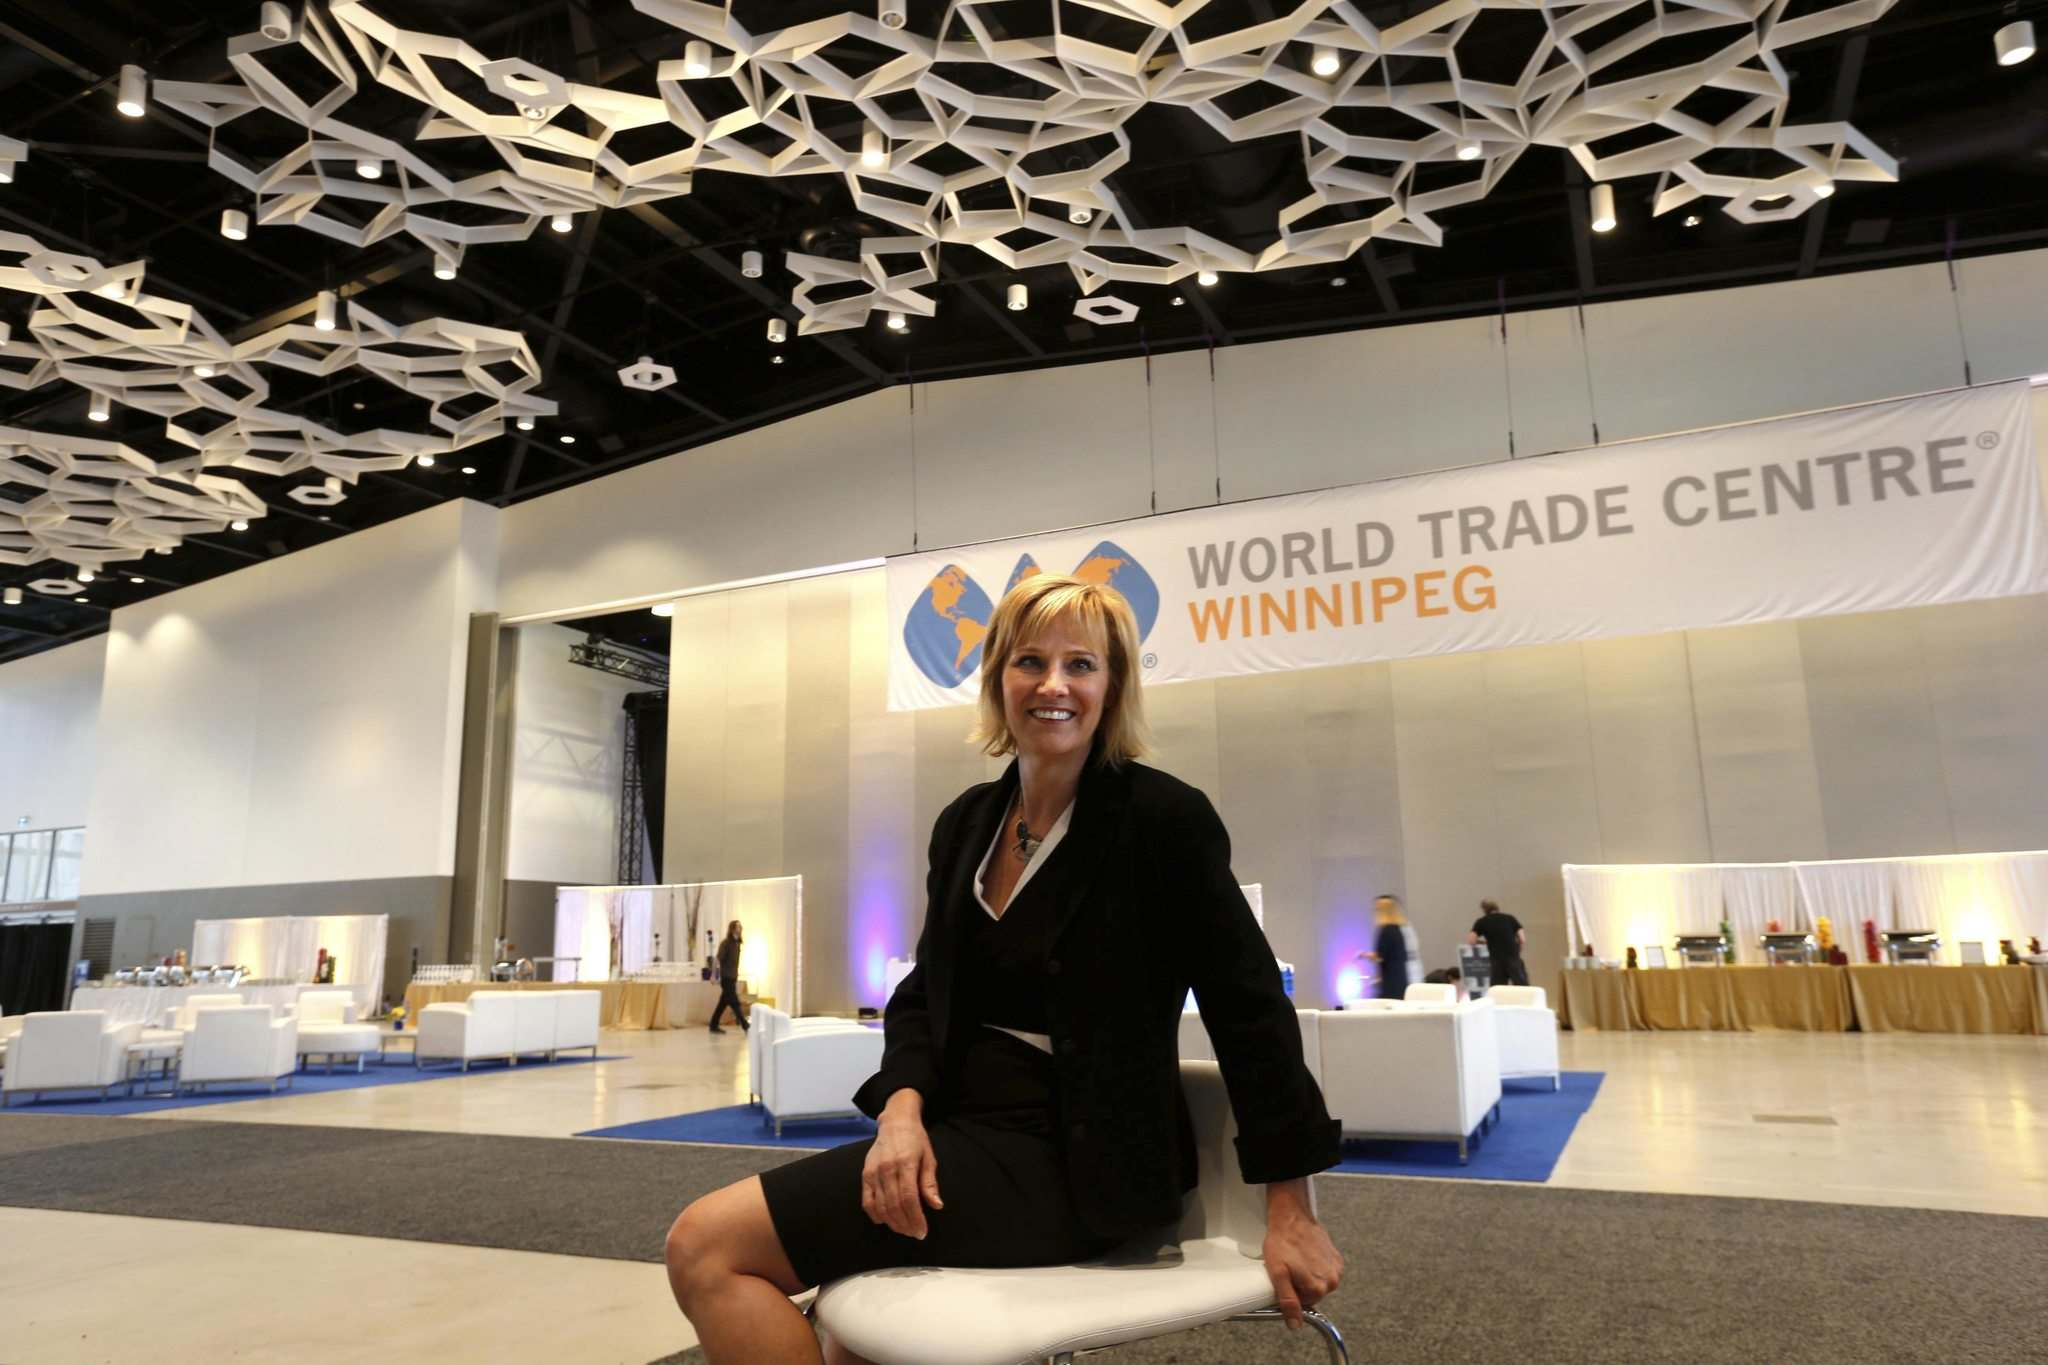 WAYNE GLOWACKI / WINNIPEG FREE PRESS FILES</p><p>Mariette Mulaire, president and CEO of the World Trade Centre Winnipeg, says despite the disruption, the North American market remains important to Manitoba businesses.</p>